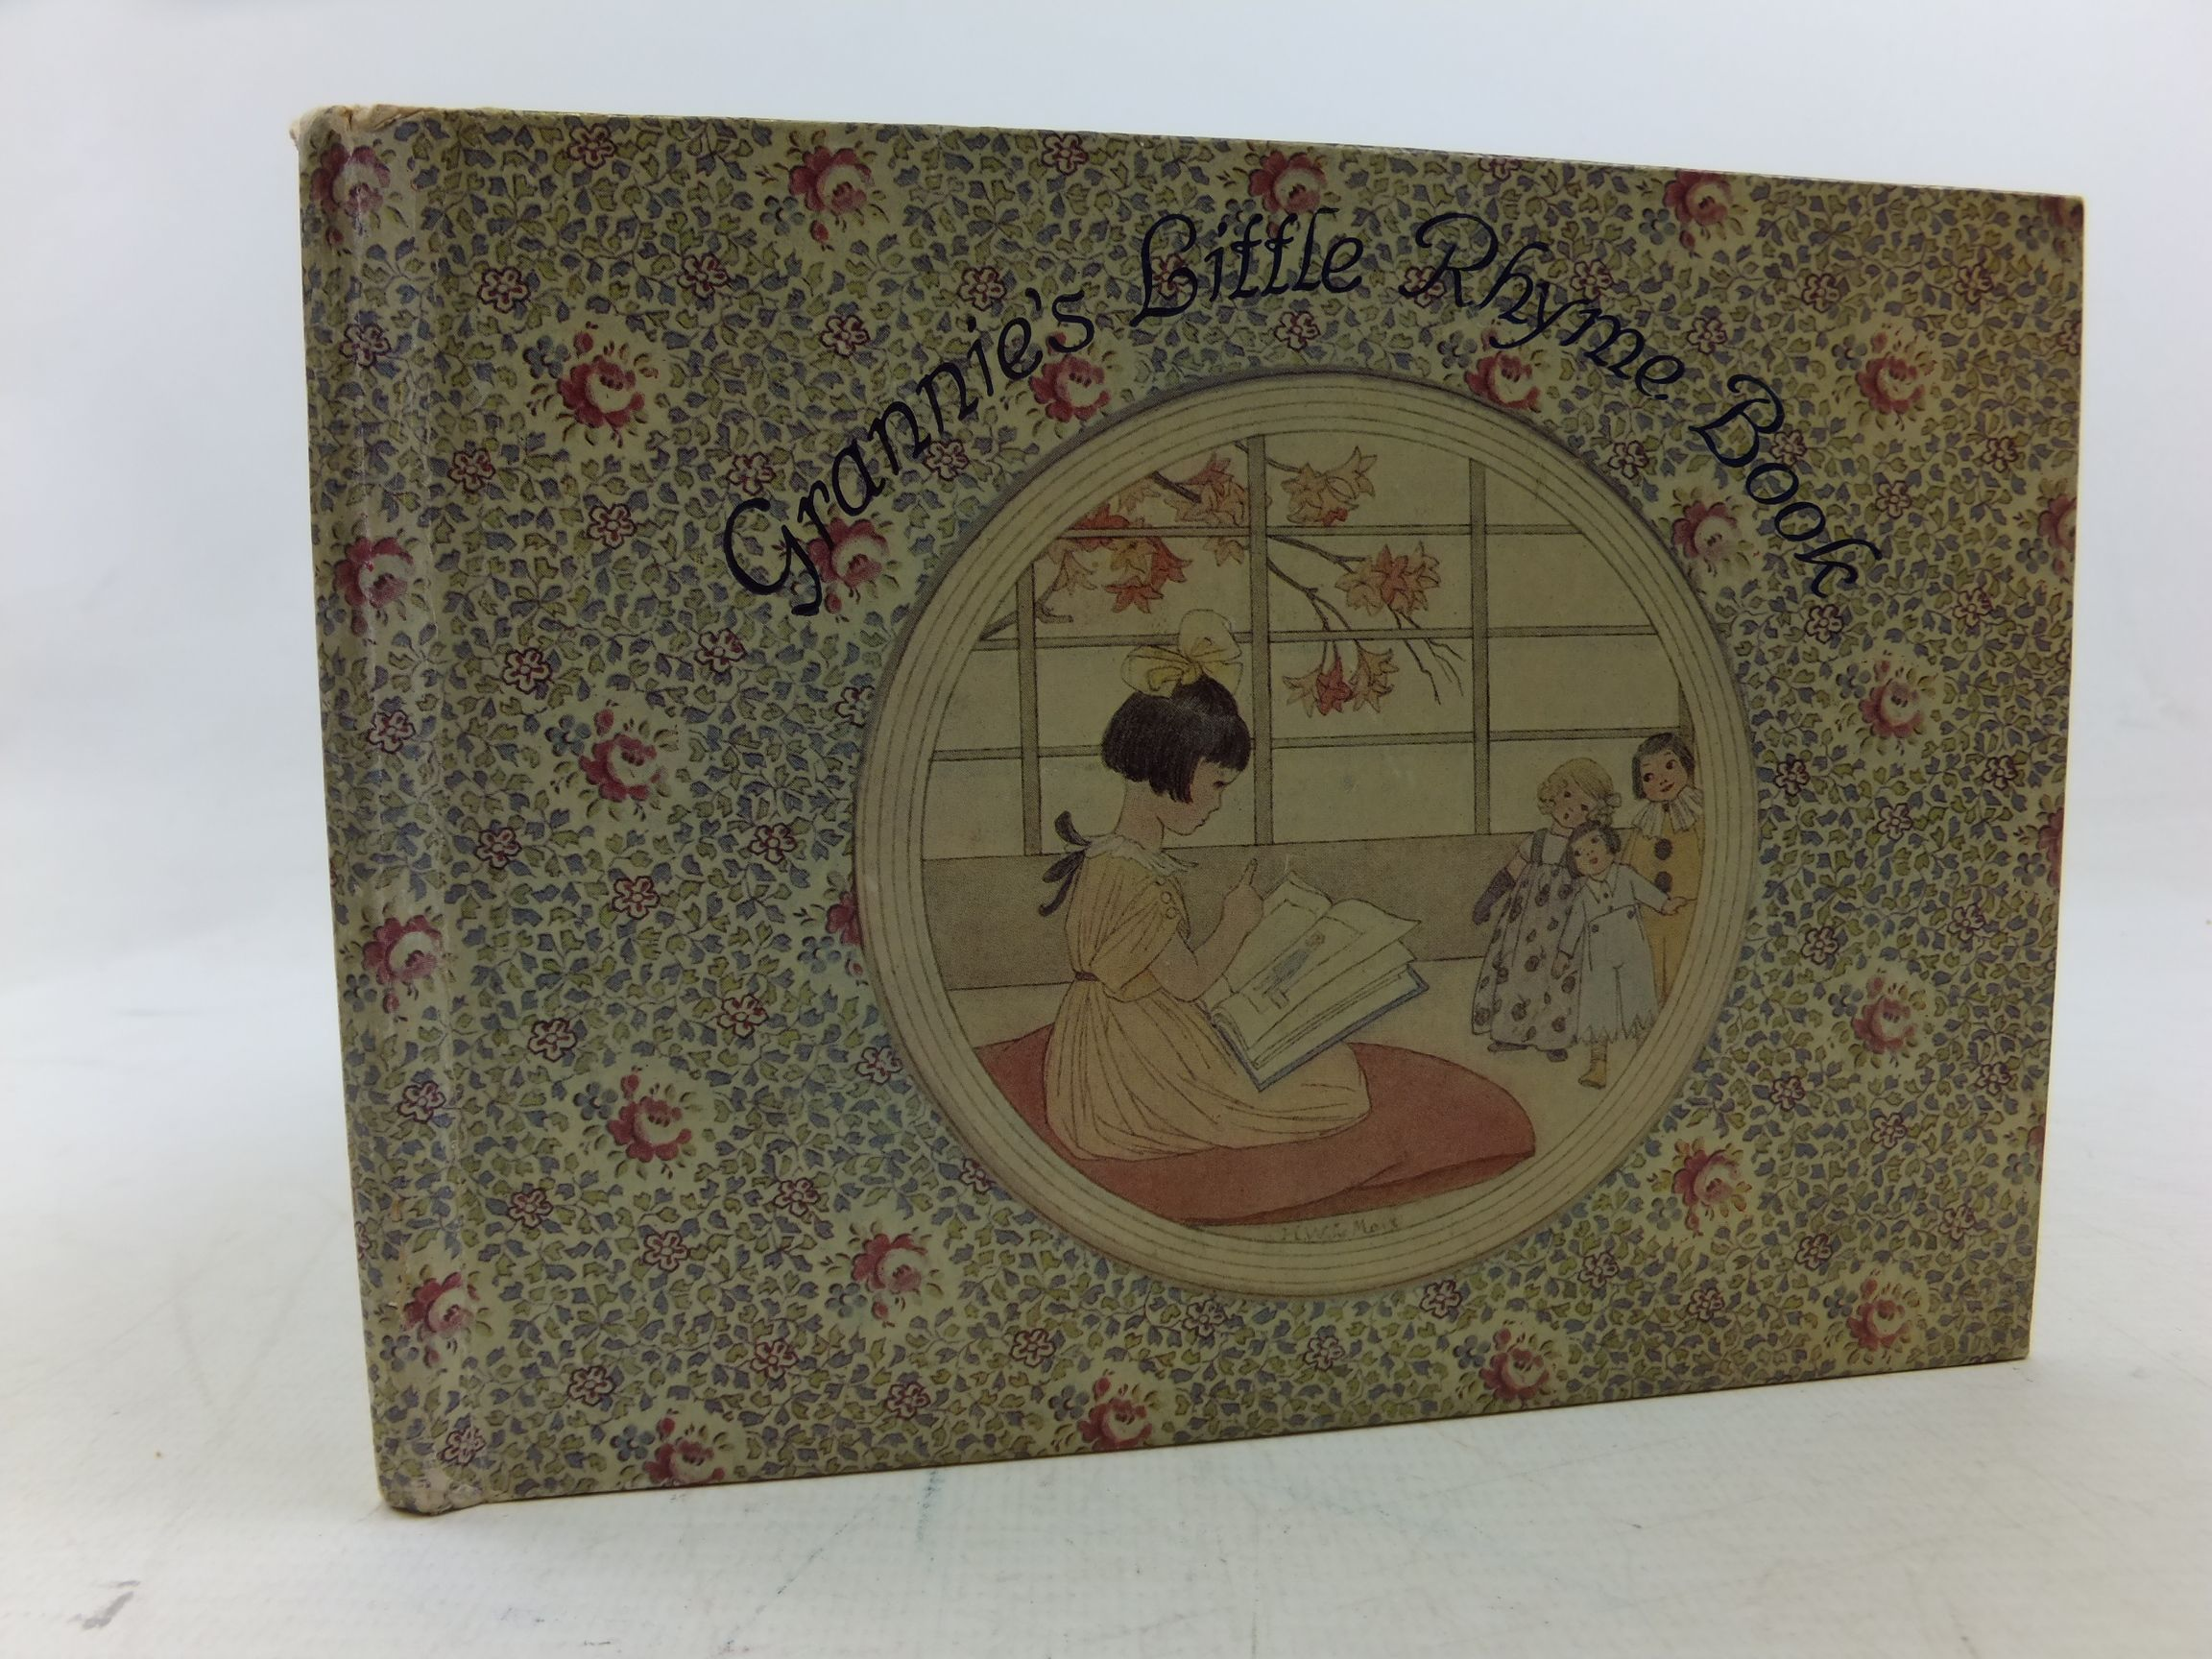 Photo of GRANNIE'S LITTLE RHYME BOOK illustrated by Willebeek Le Mair, Henriette published by Augener Ltd. (STOCK CODE: 2113318)  for sale by Stella & Rose's Books